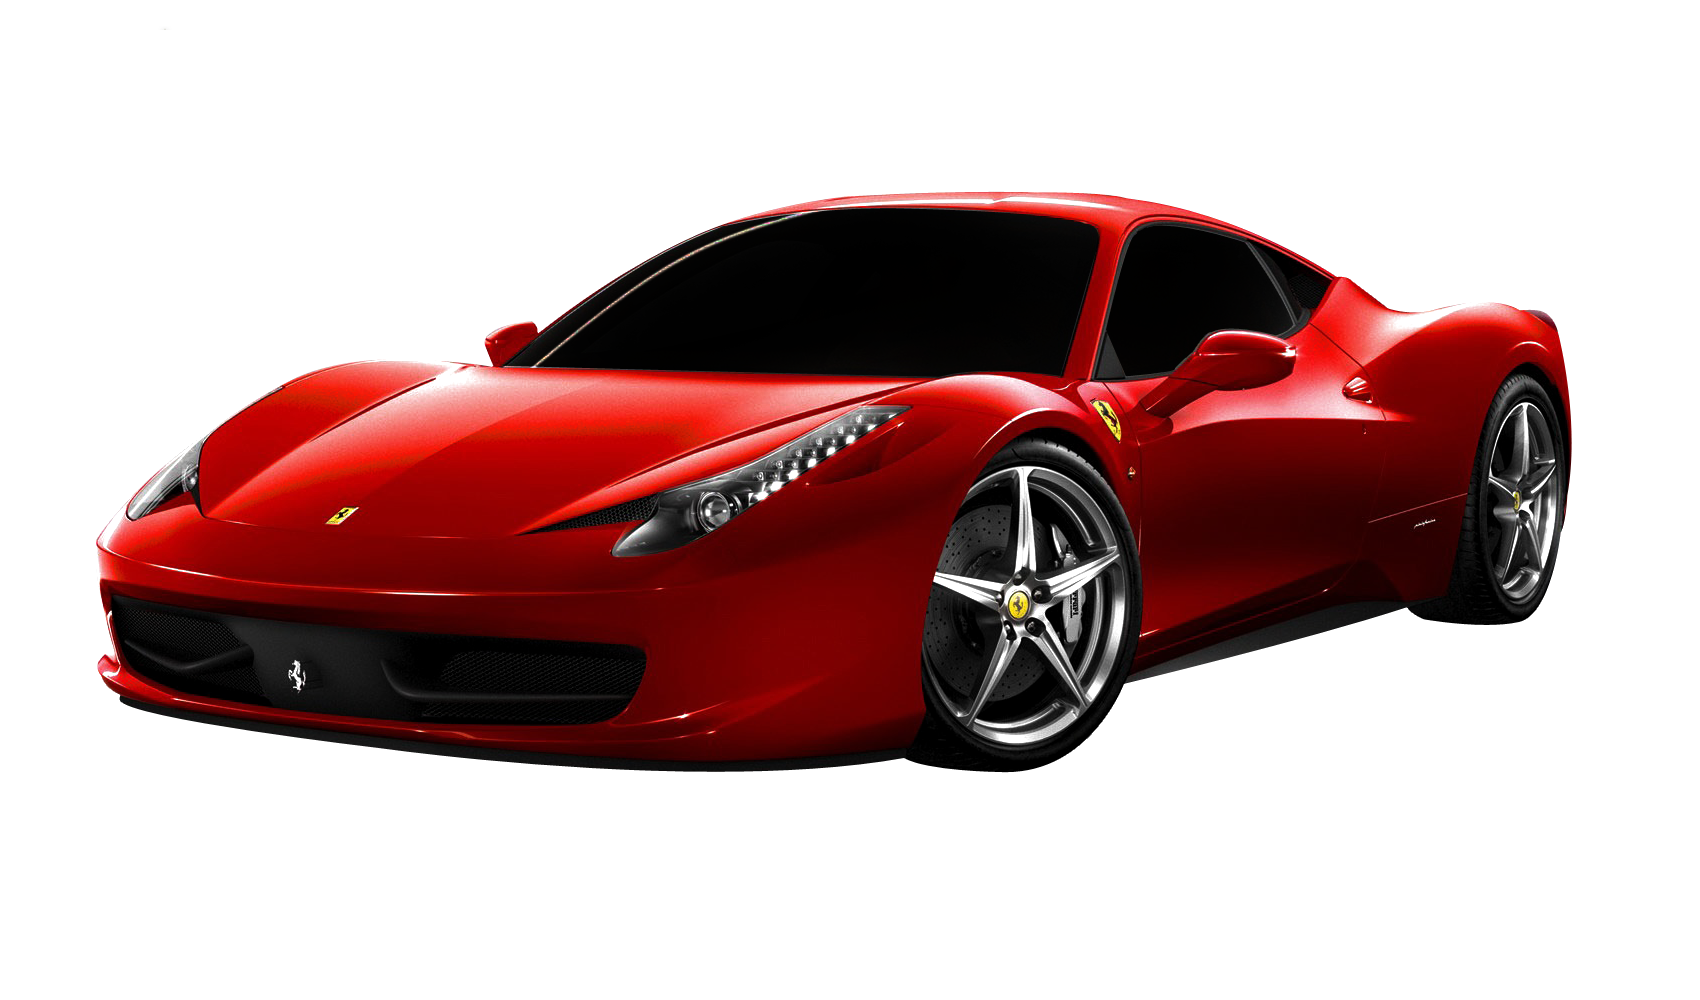 picture royalty free download Png image purepng free. Ferrari transparent